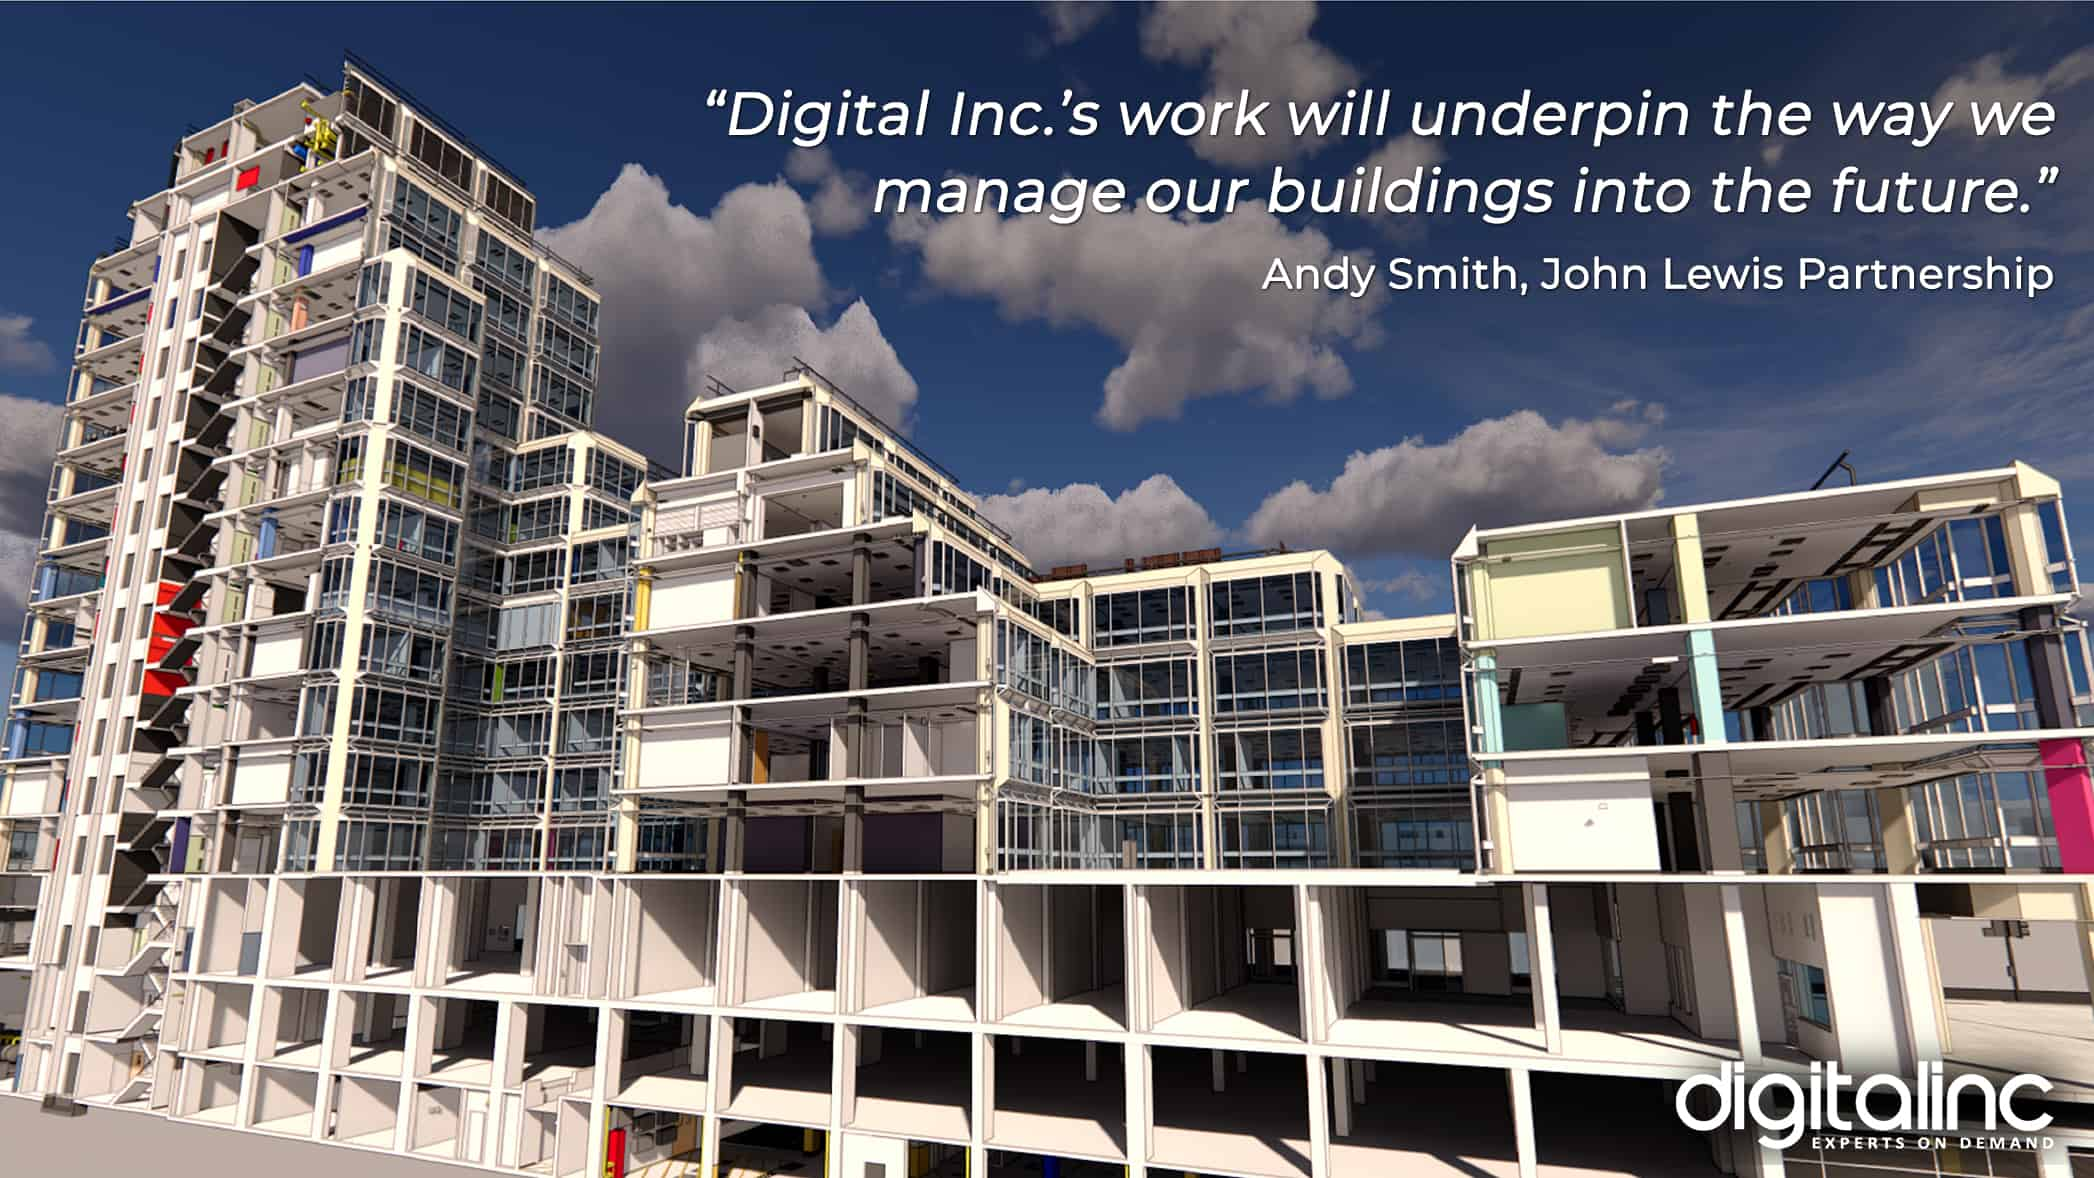 """Rendering of John lewis Headquarters with testimonial: """"Digital Inc.'s work will underpin the way we manage our buildings into the future."""" Andy Smith, John Lewis Partnership"""